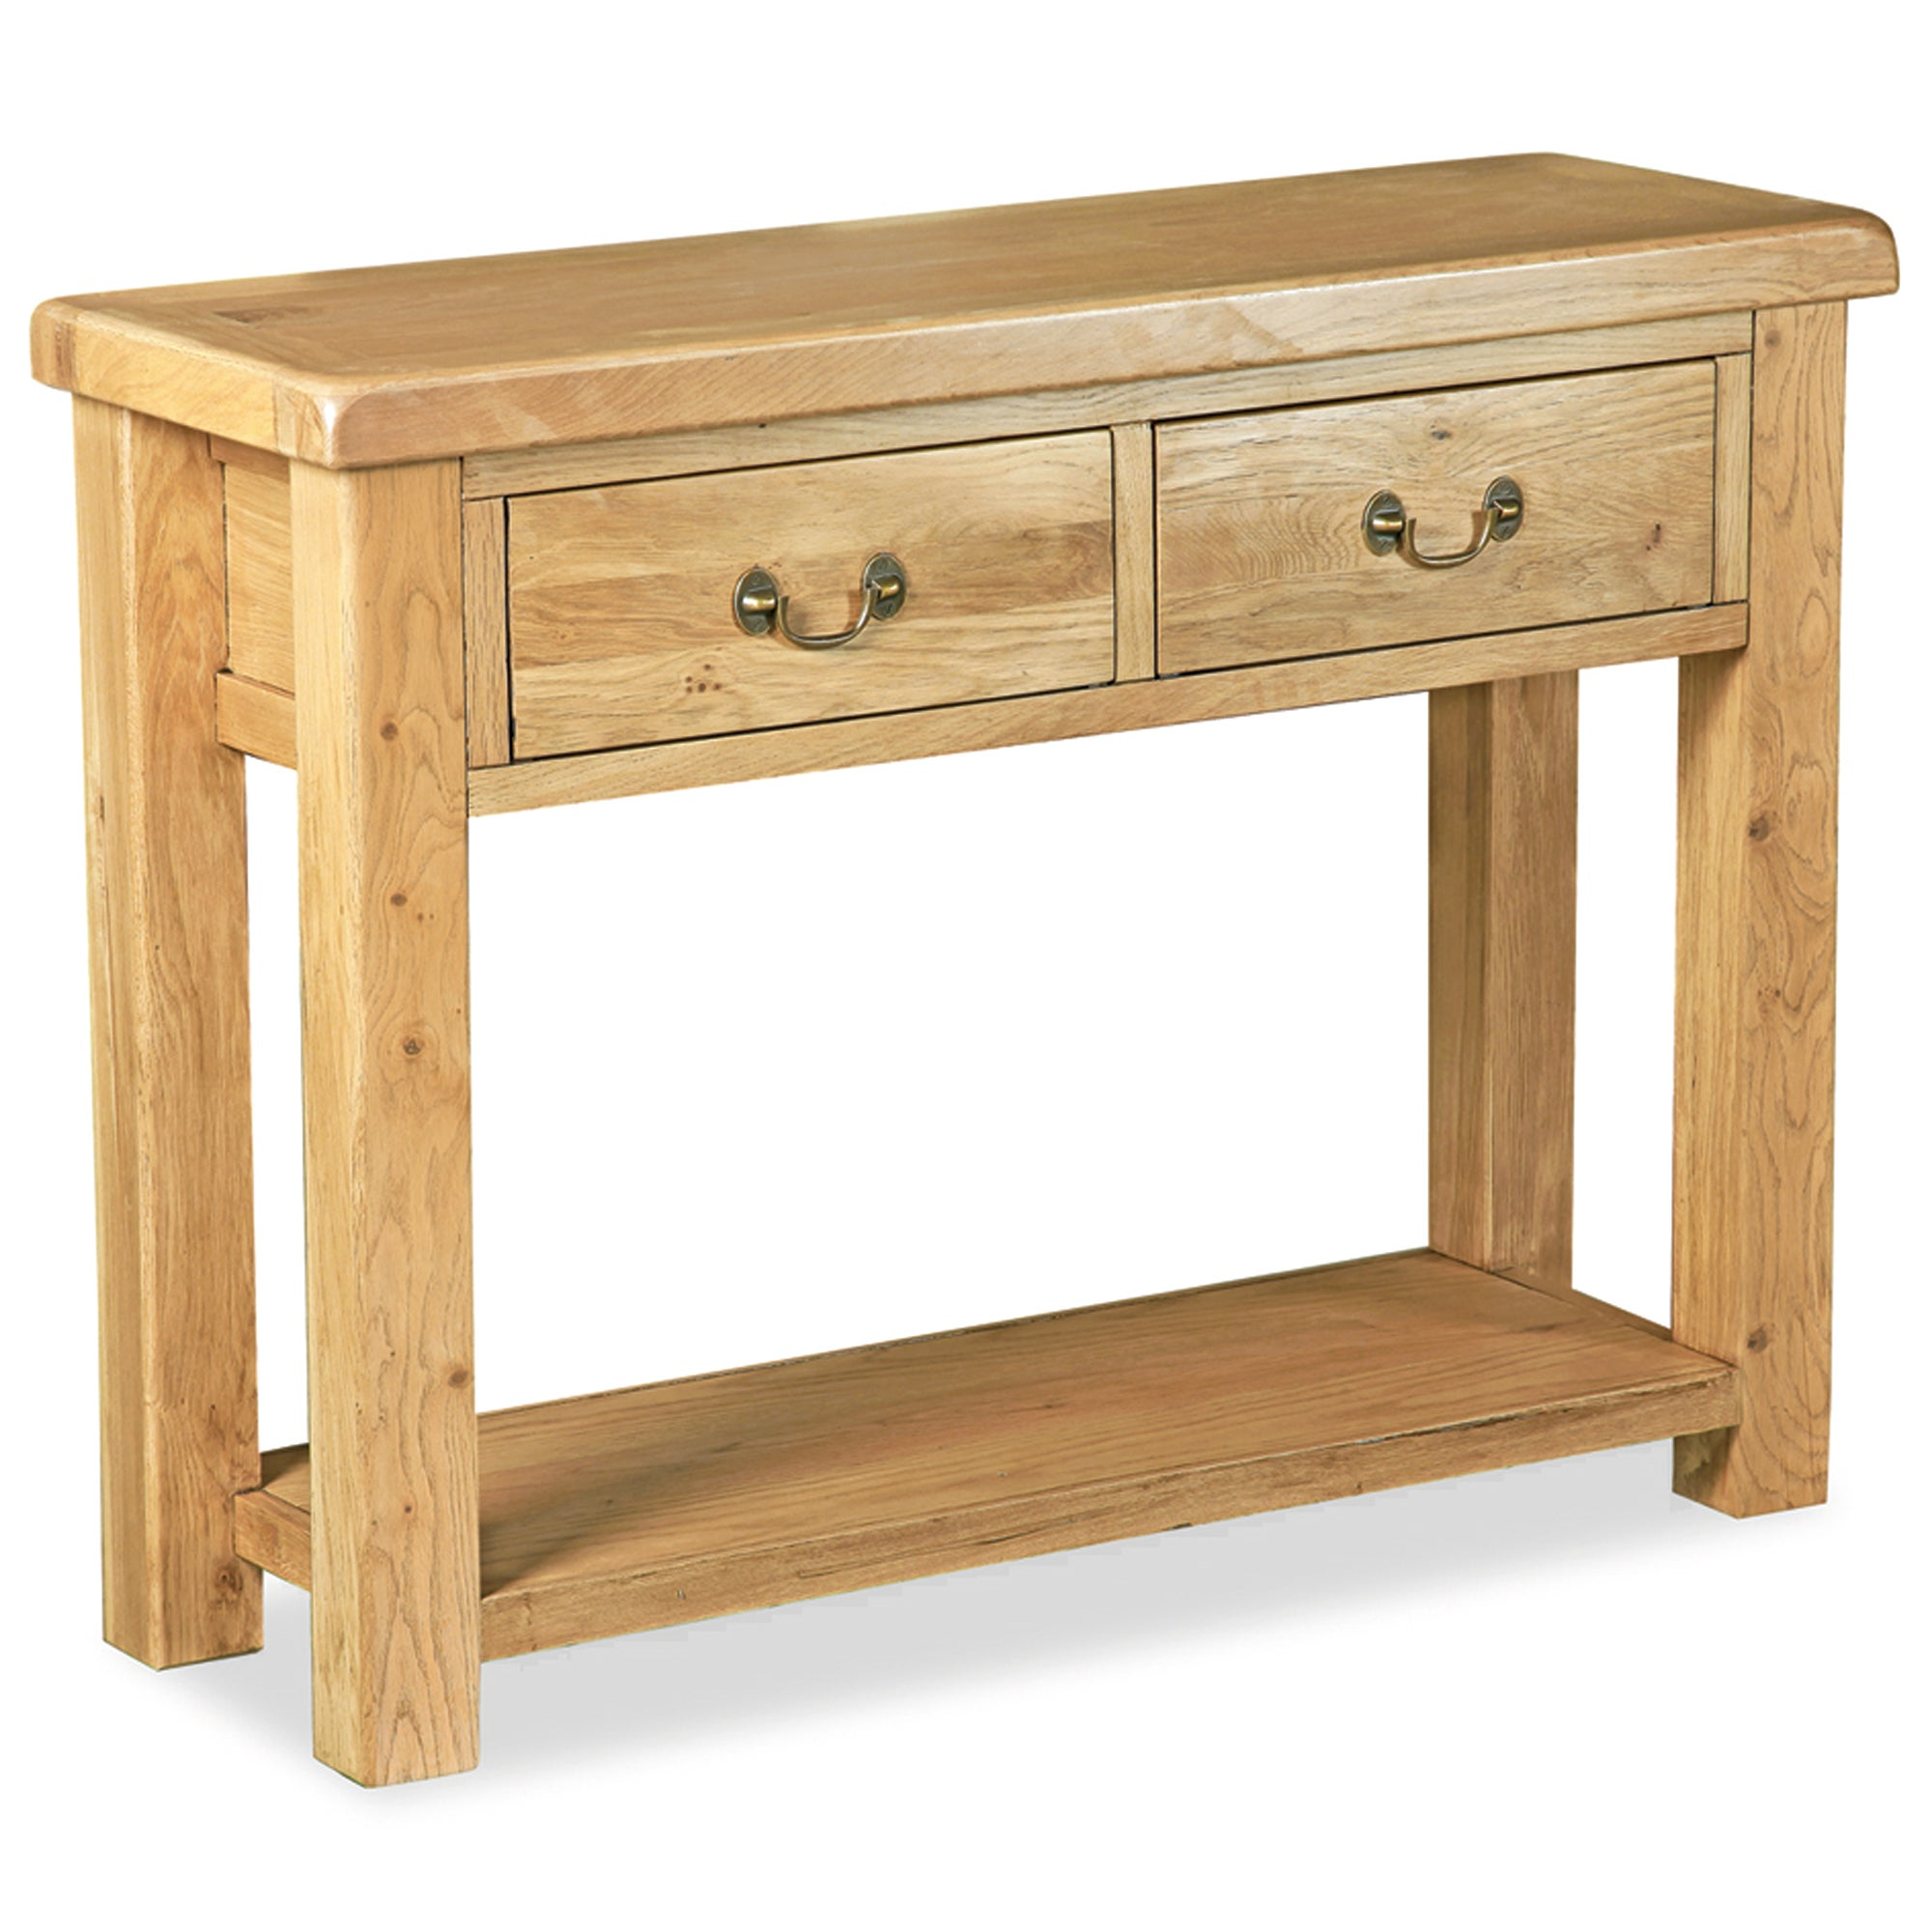 Wexford Oak Console Table